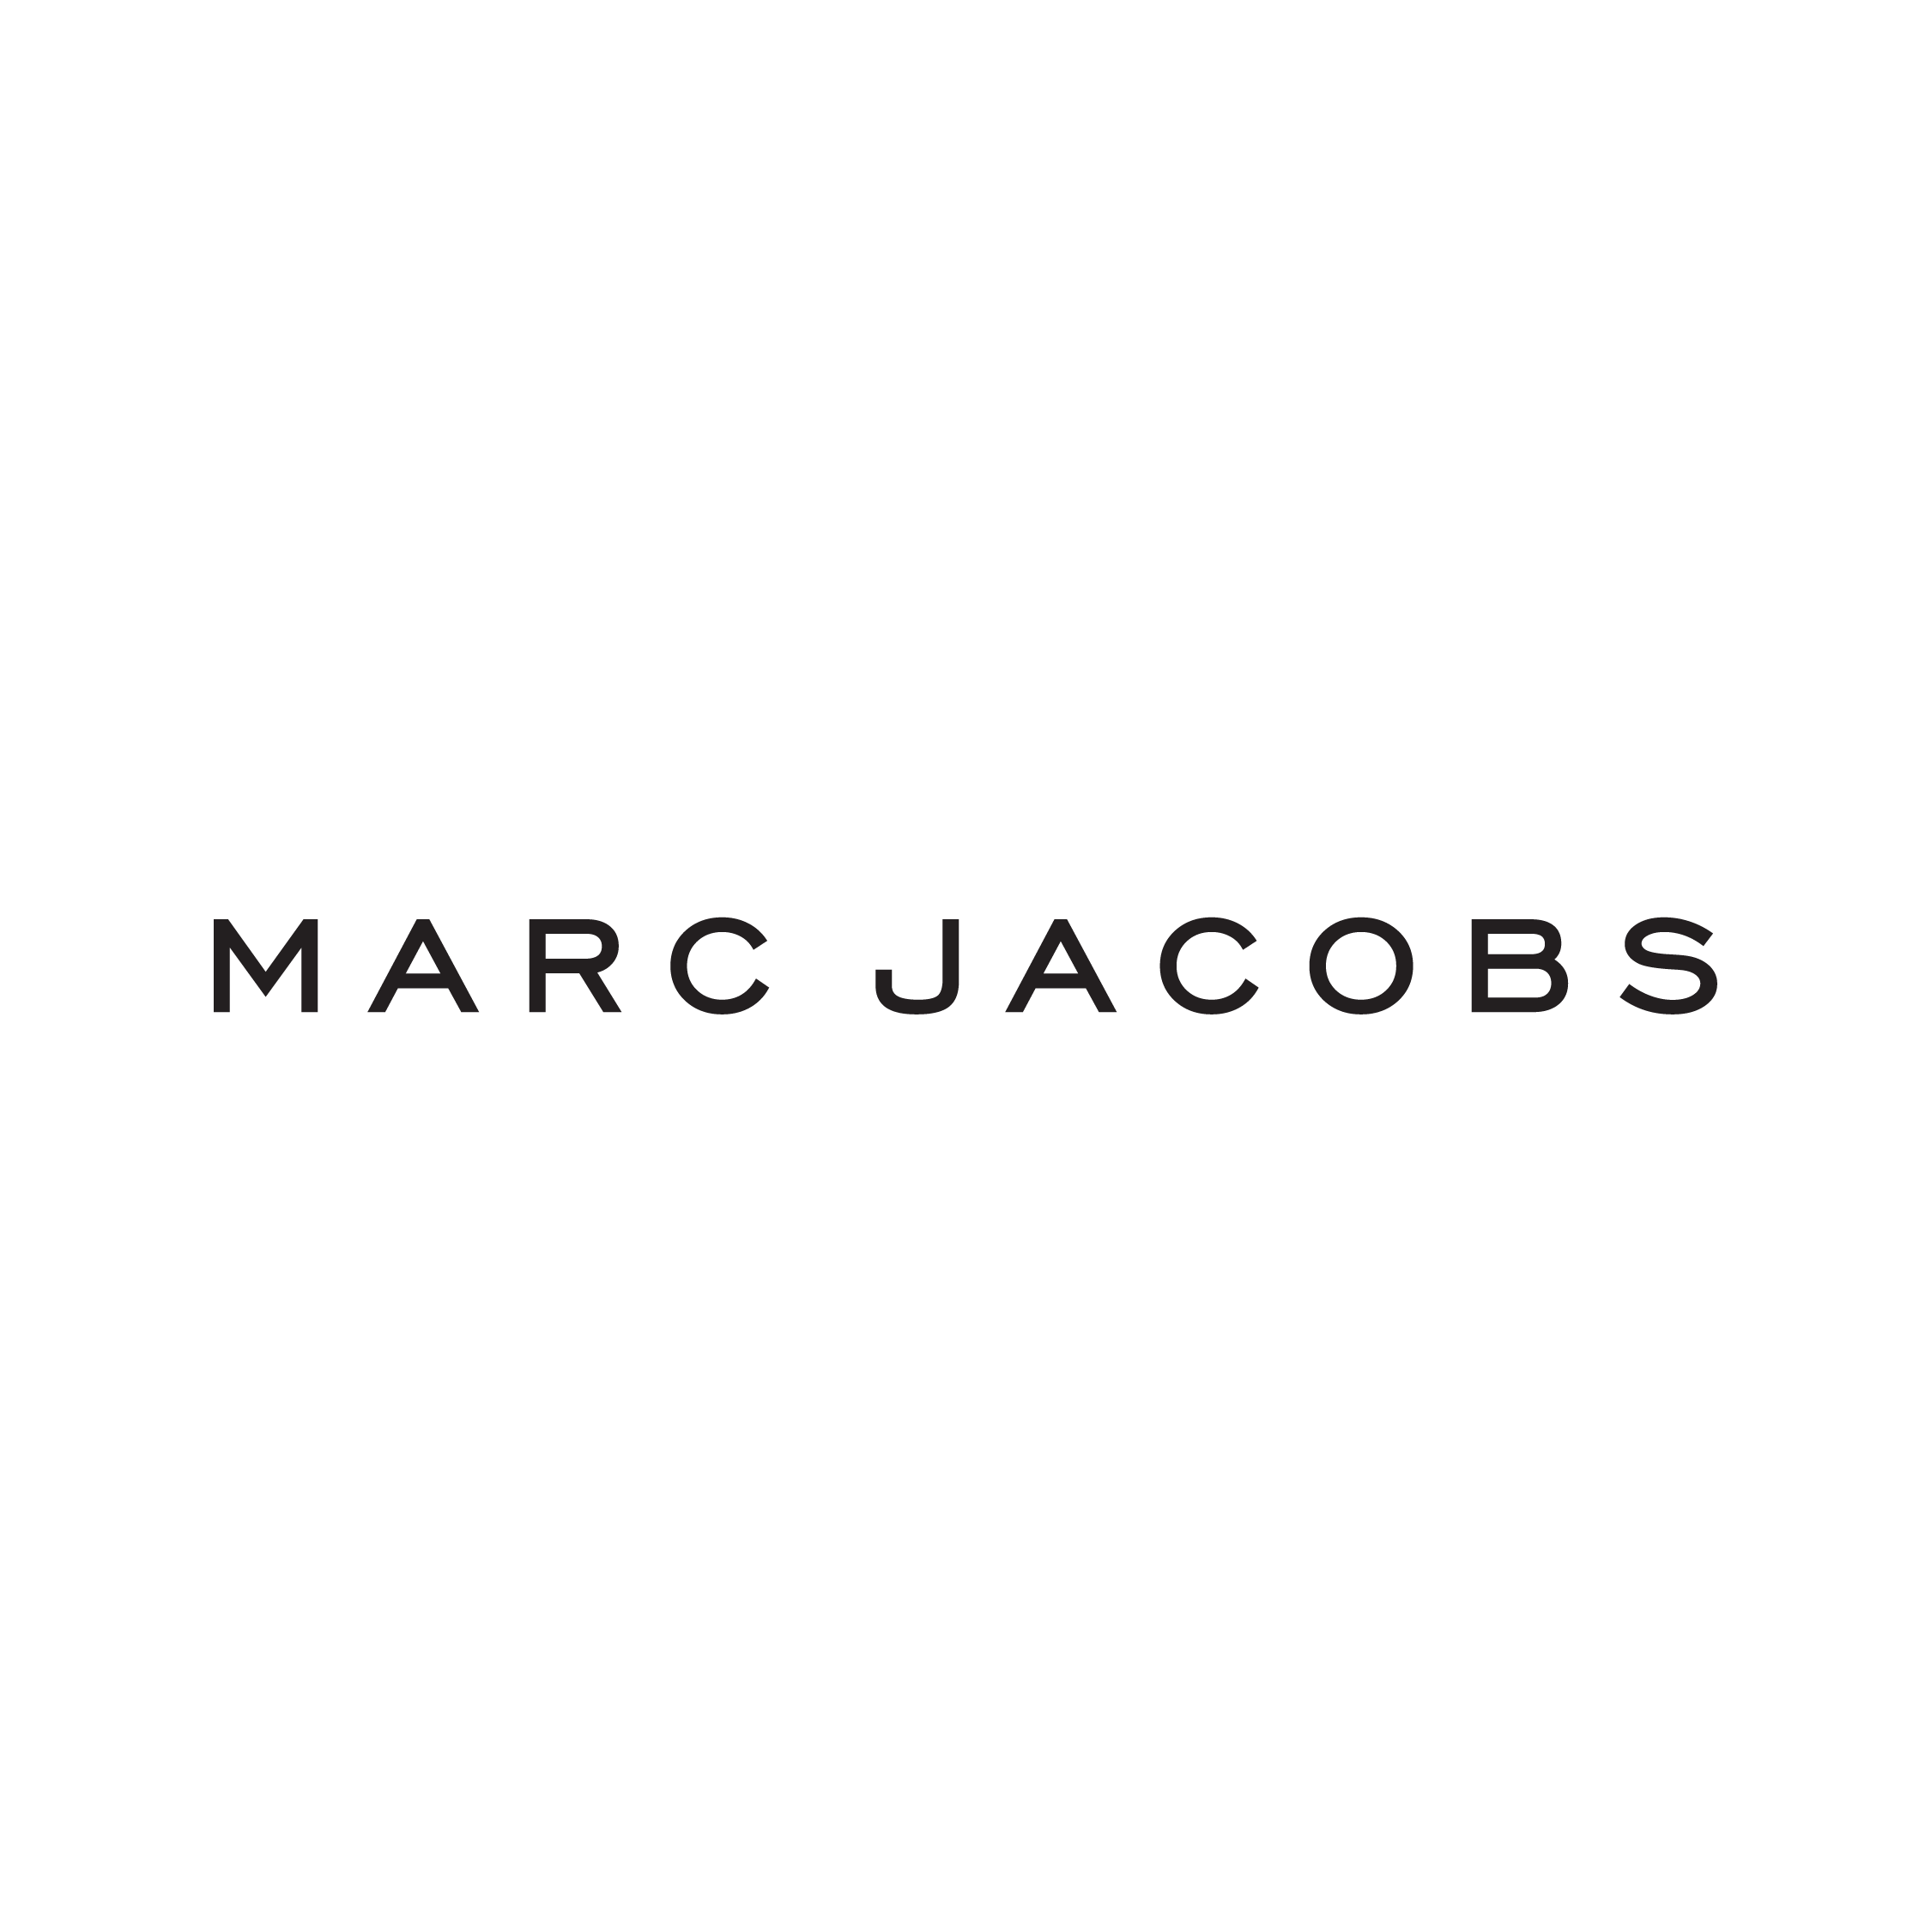 logo-marc-jacobs.png